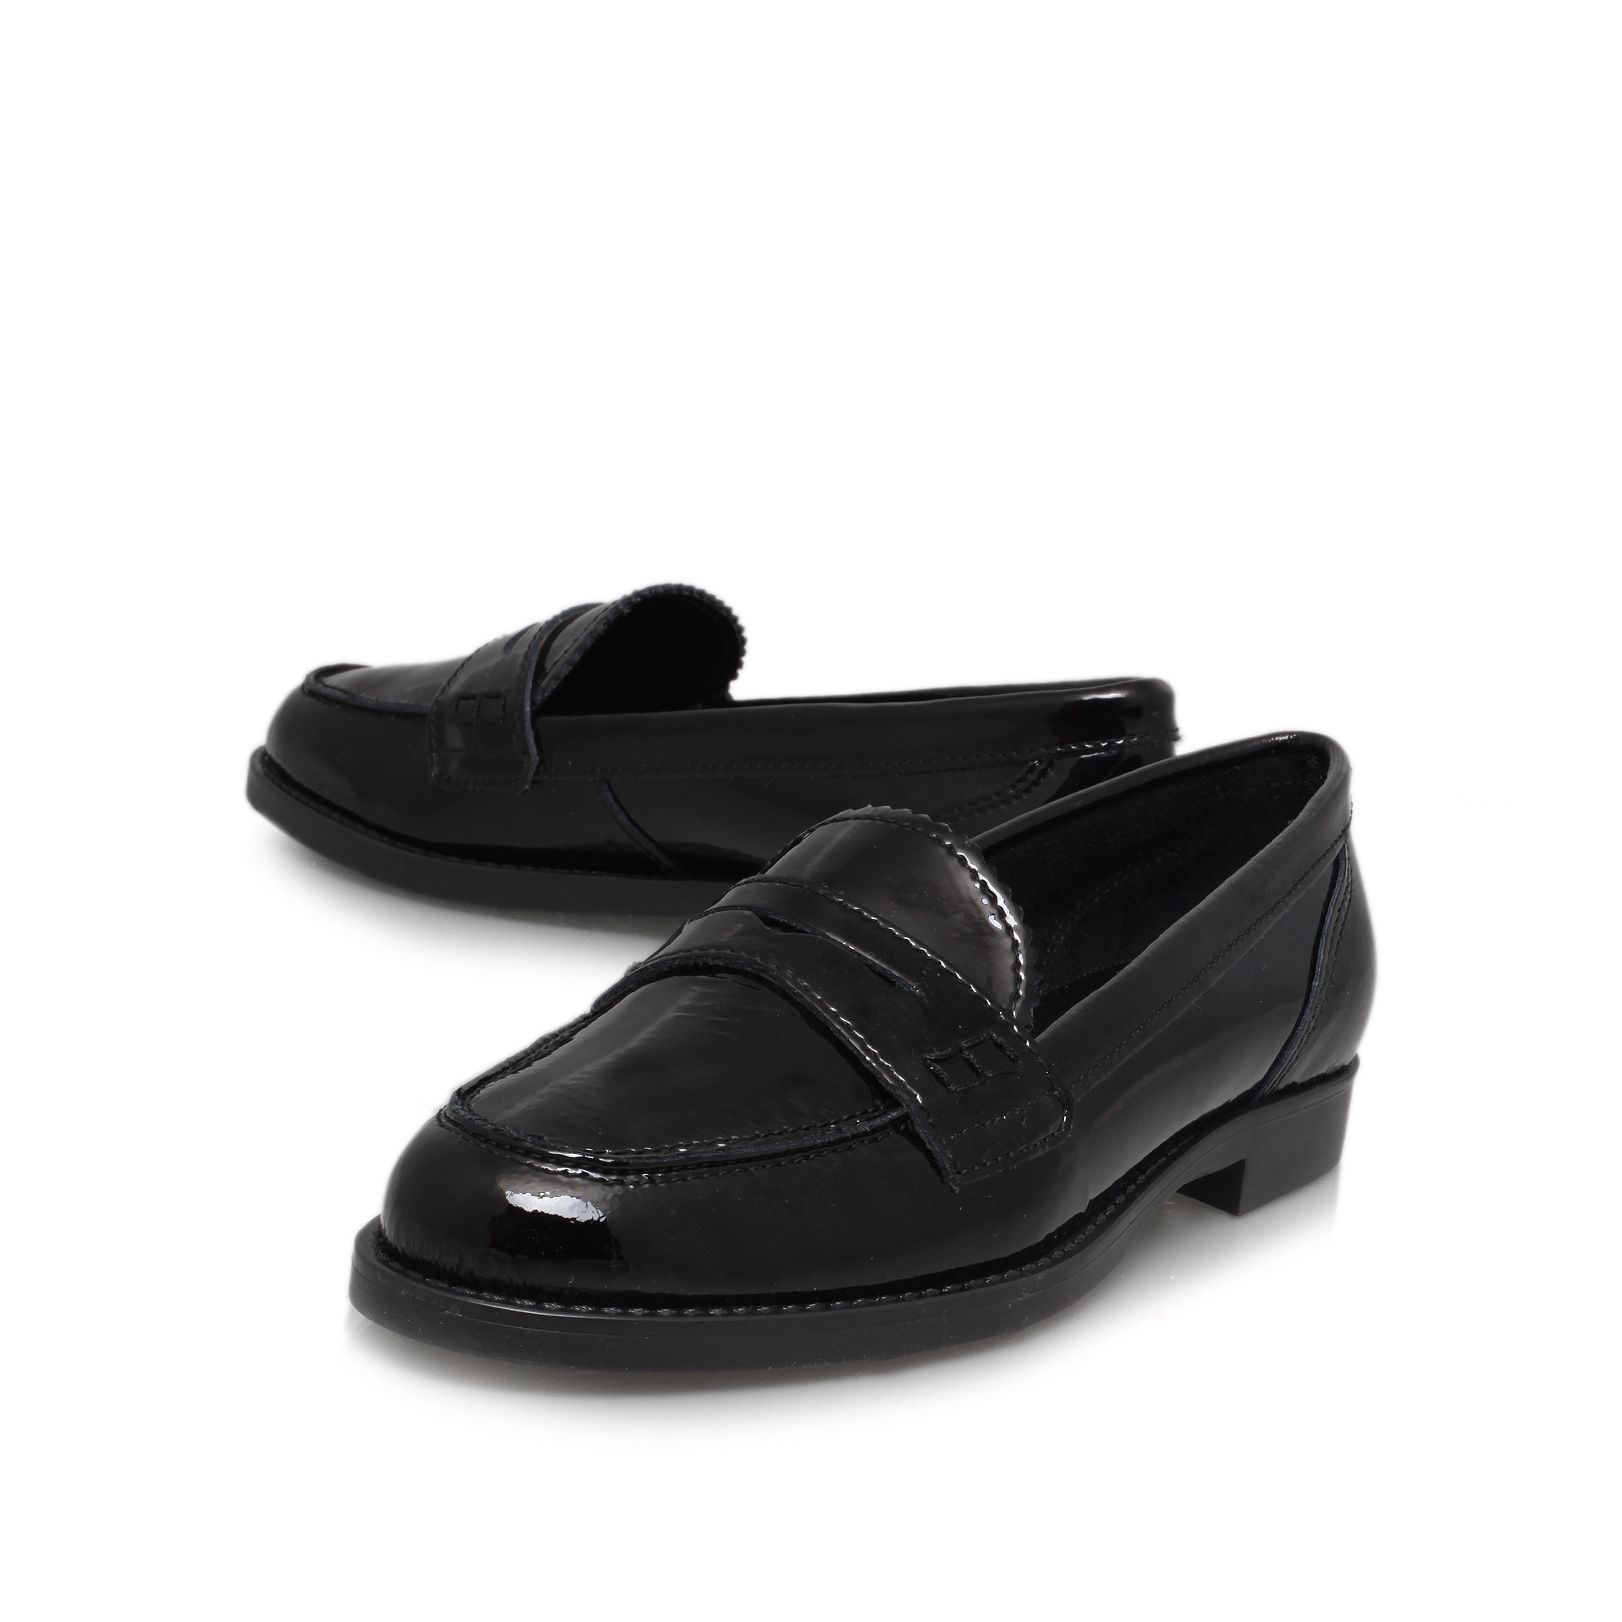 Norbert flat loafers